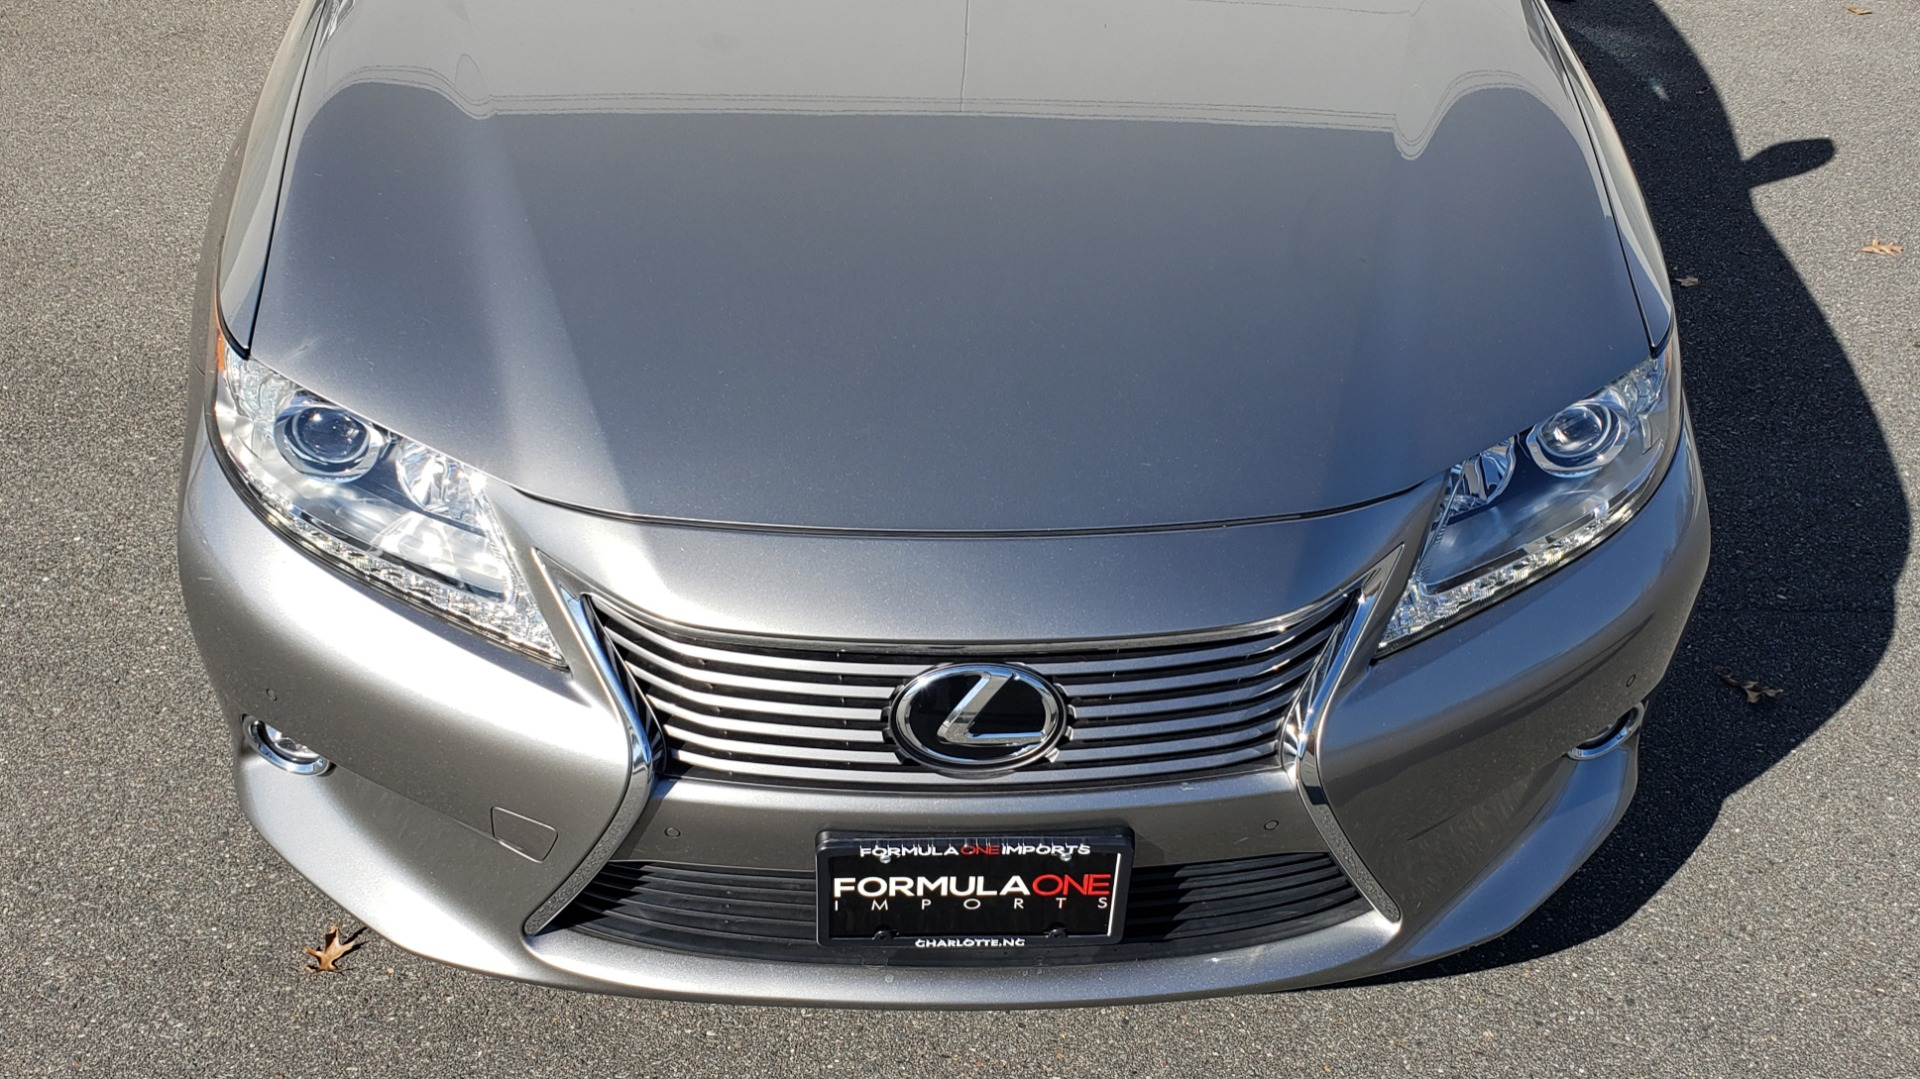 Used 2015 Lexus ES 350 LUXURY PKG / NAV / BSM / LCA / PARK ASSIST / REARVIEW for sale Sold at Formula Imports in Charlotte NC 28227 20